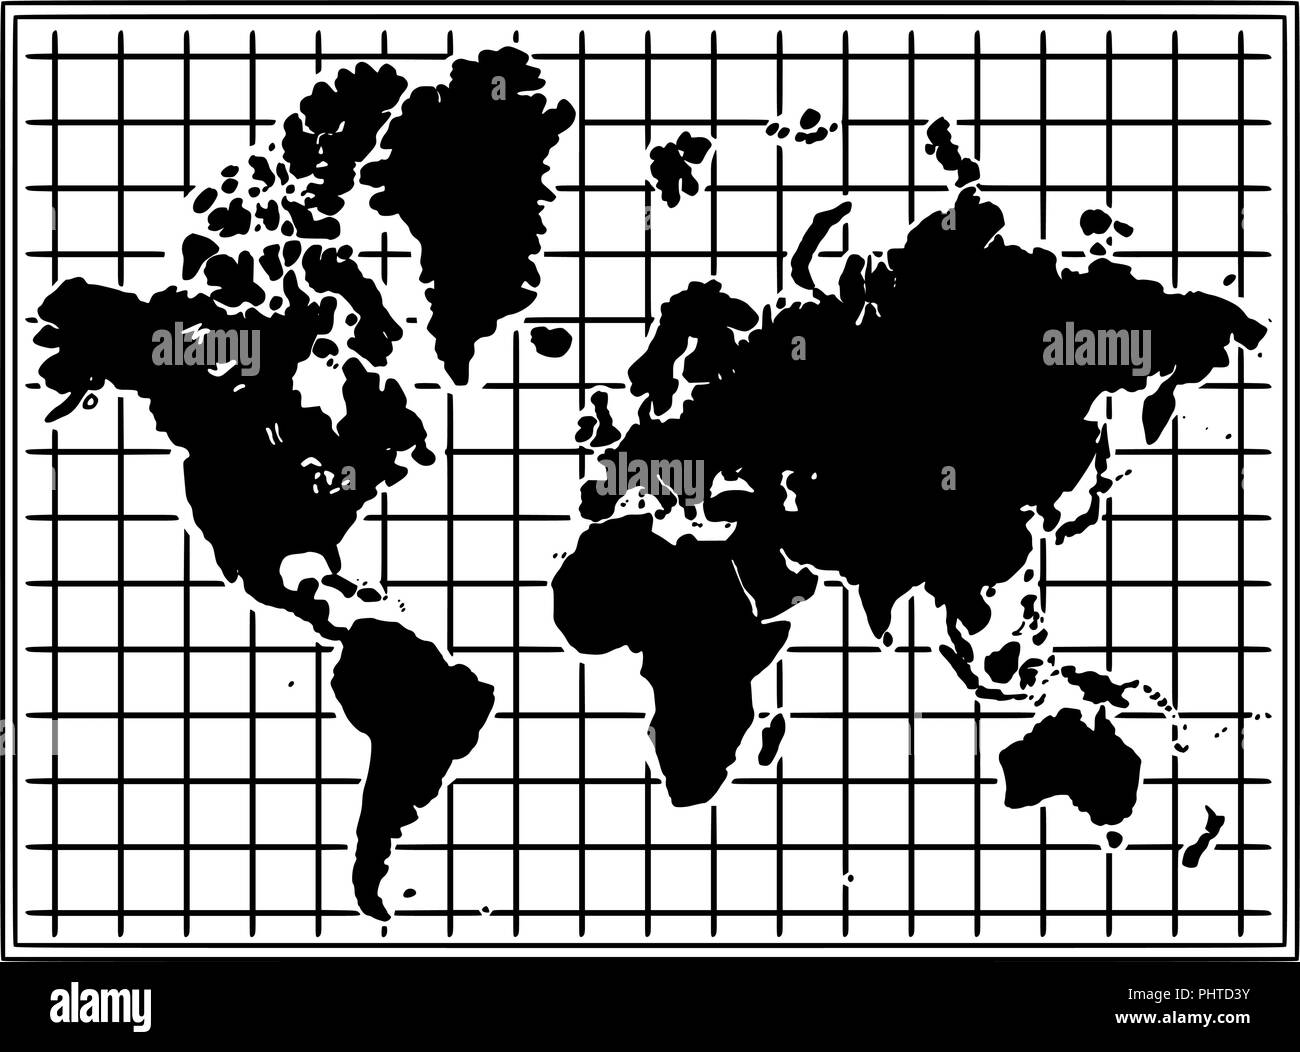 Cartoon Drawing Illustration of World Map in Black and White - Stock Vector